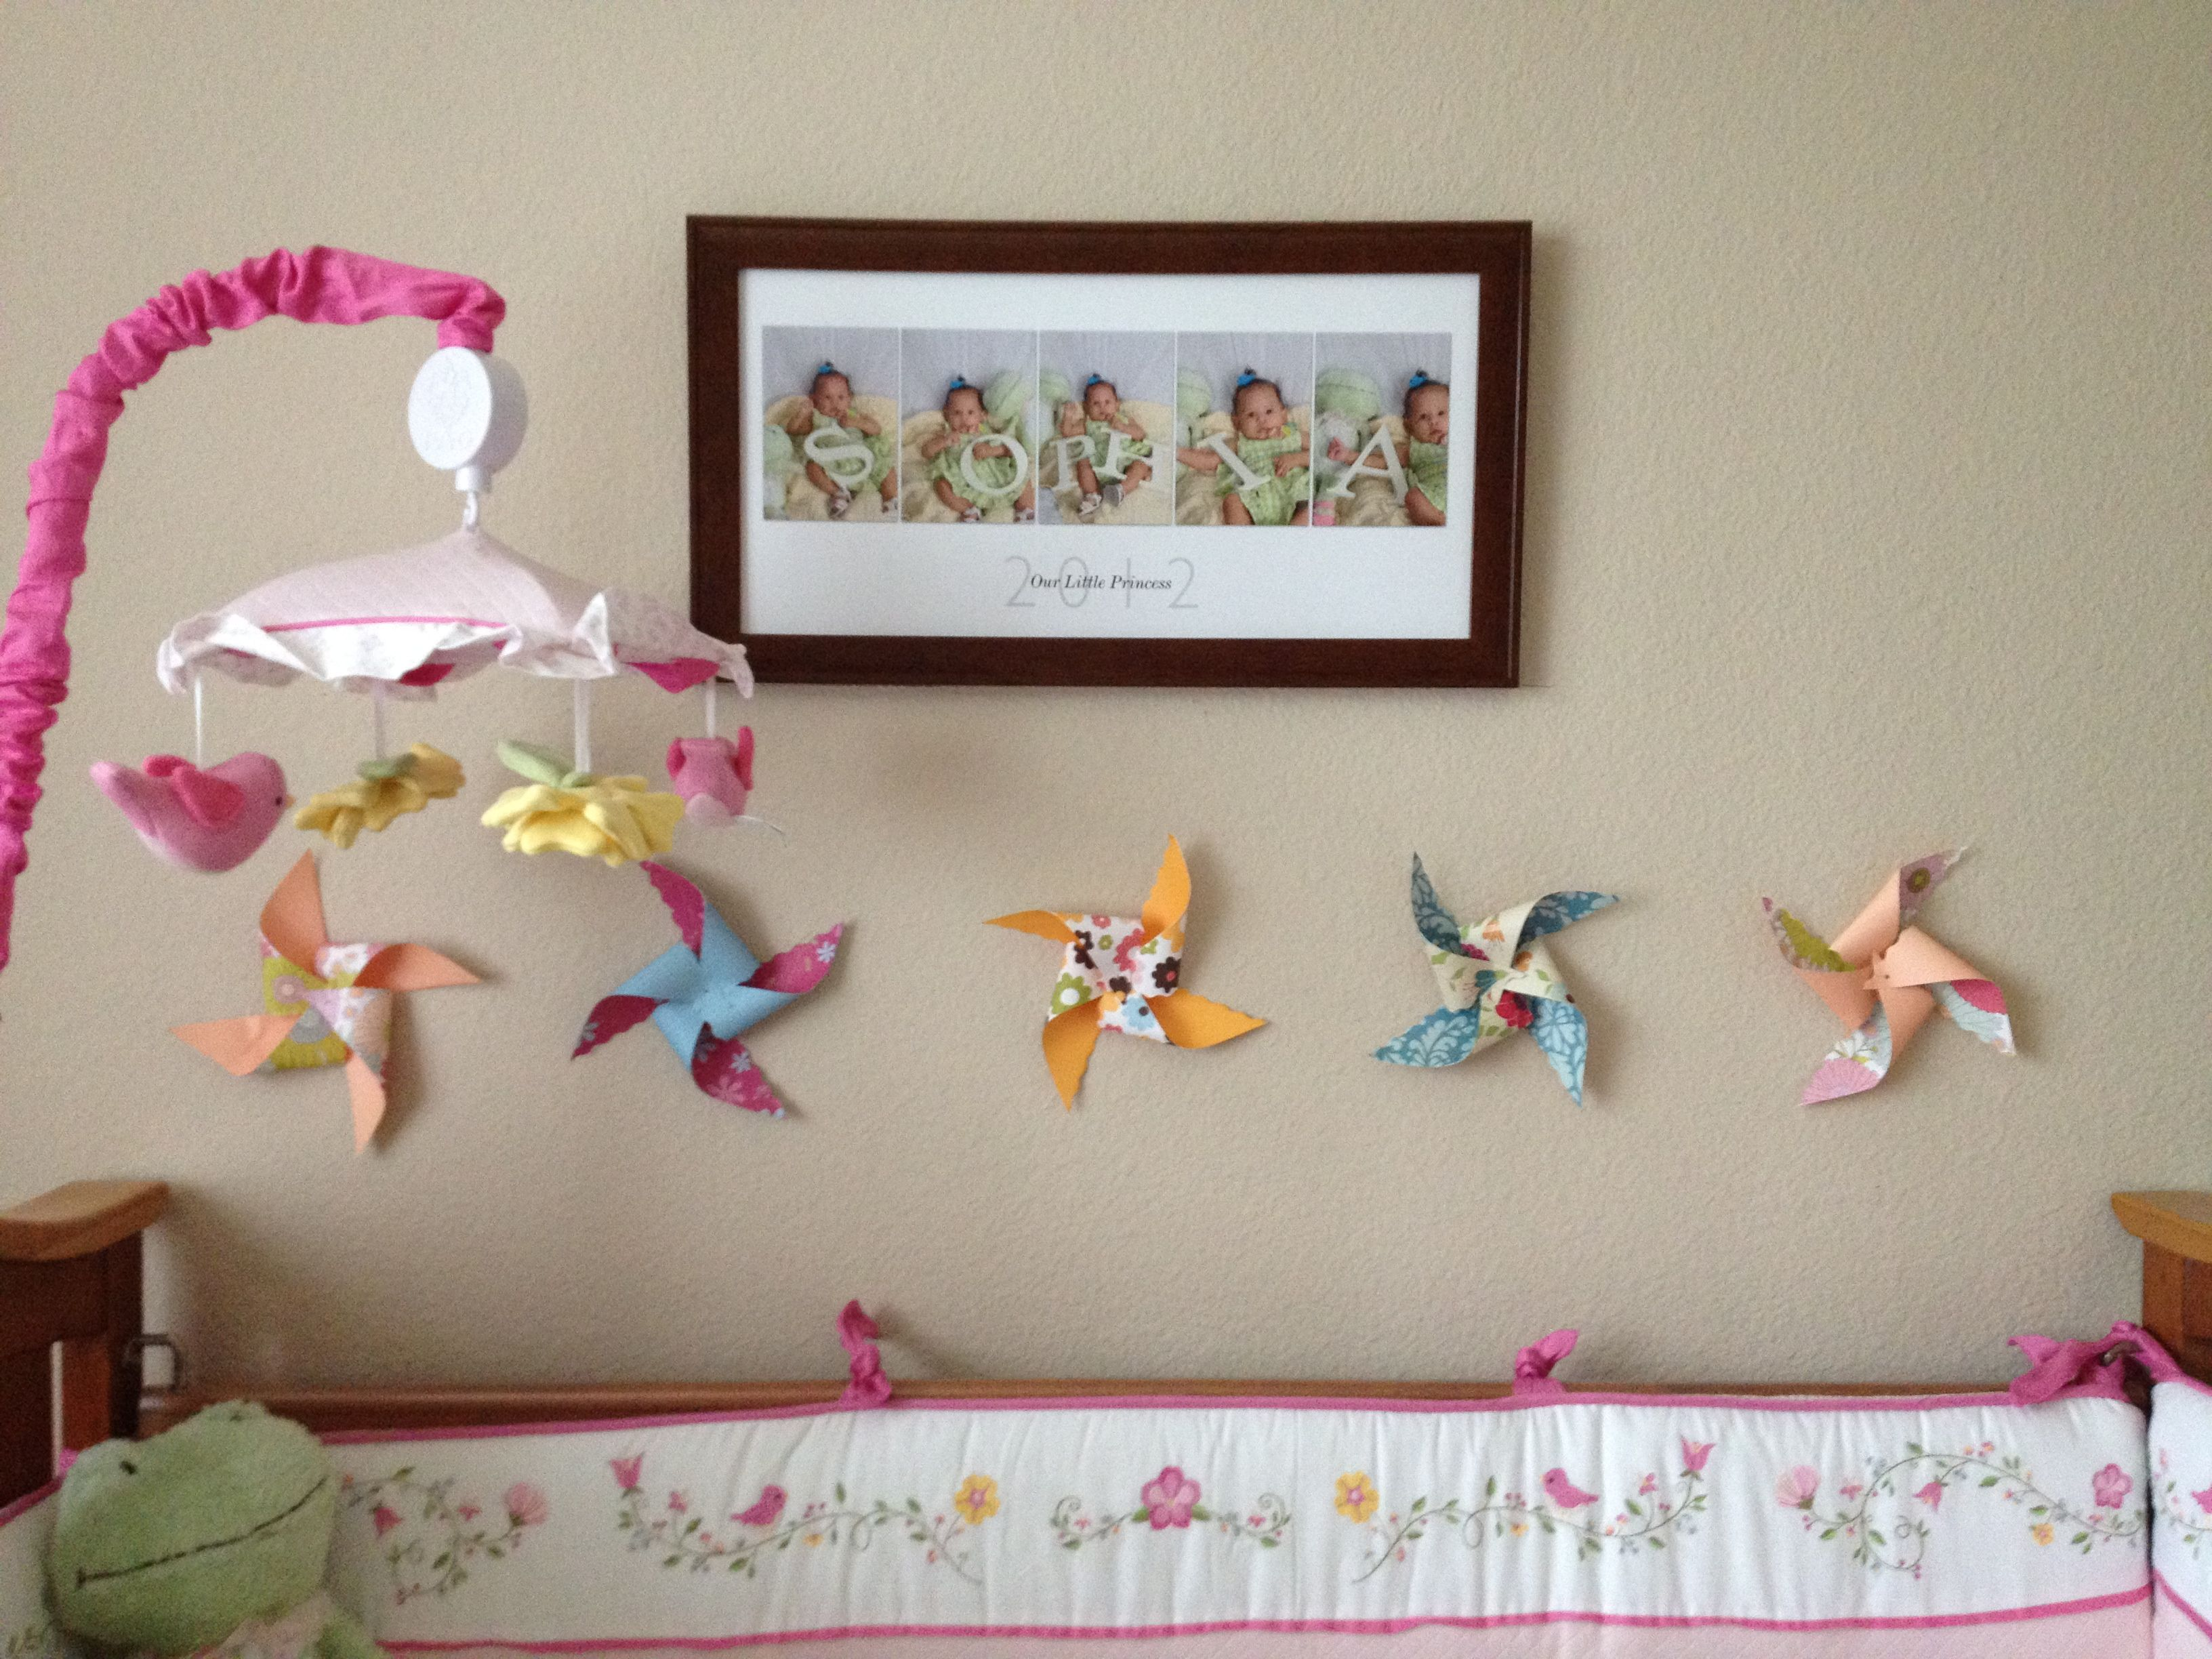 Sophie's wall. Pinwheels courtesy of my aunt Anne and uncle Tom's wedding, FAO Schwartz, bedding and mobile, and photo collage.